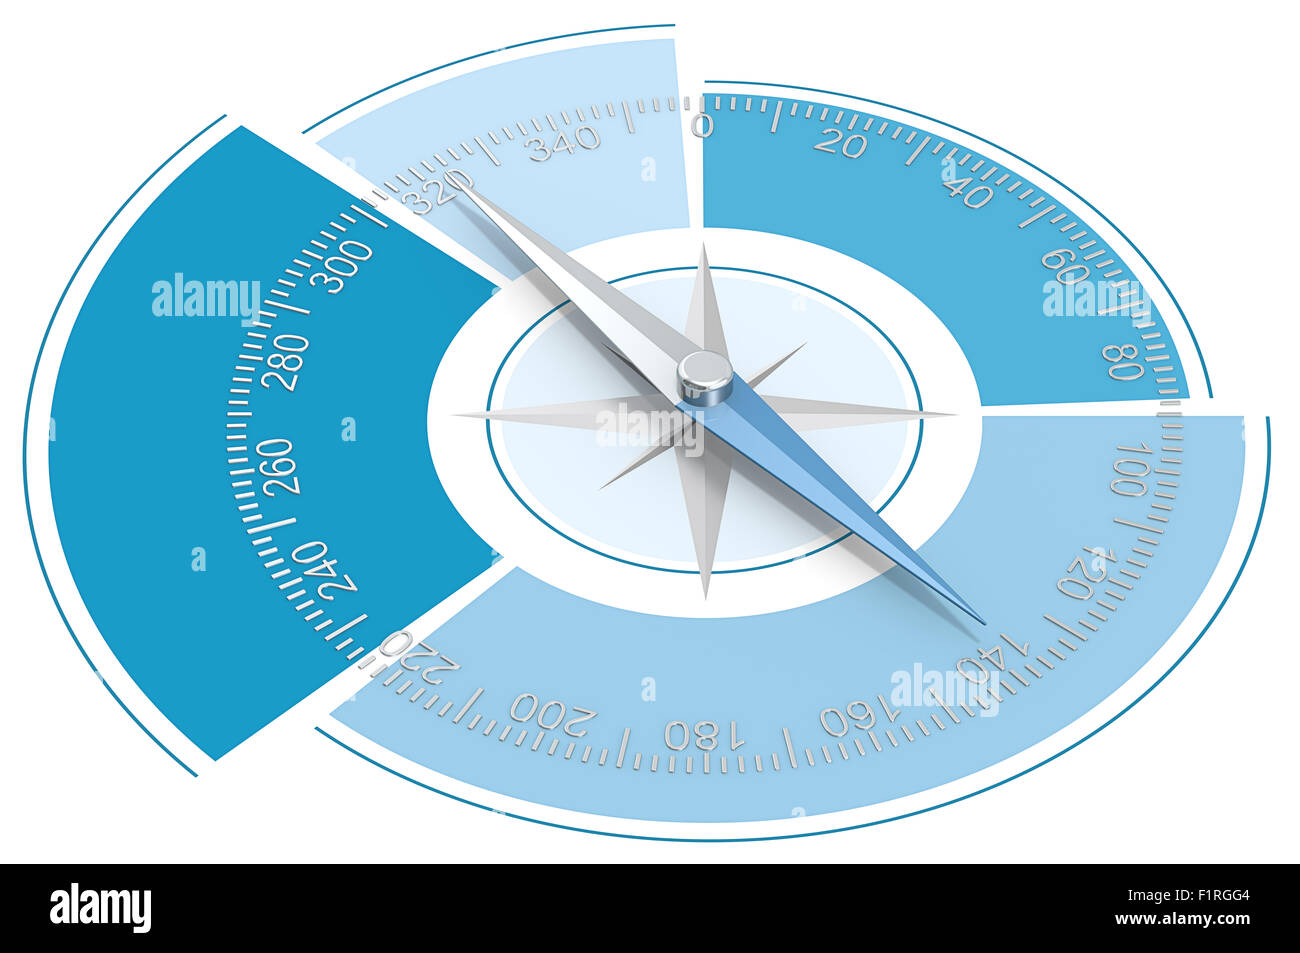 Abstract compass on top of a pie chart stock photo royalty free abstract compass on top of a pie chart nvjuhfo Gallery